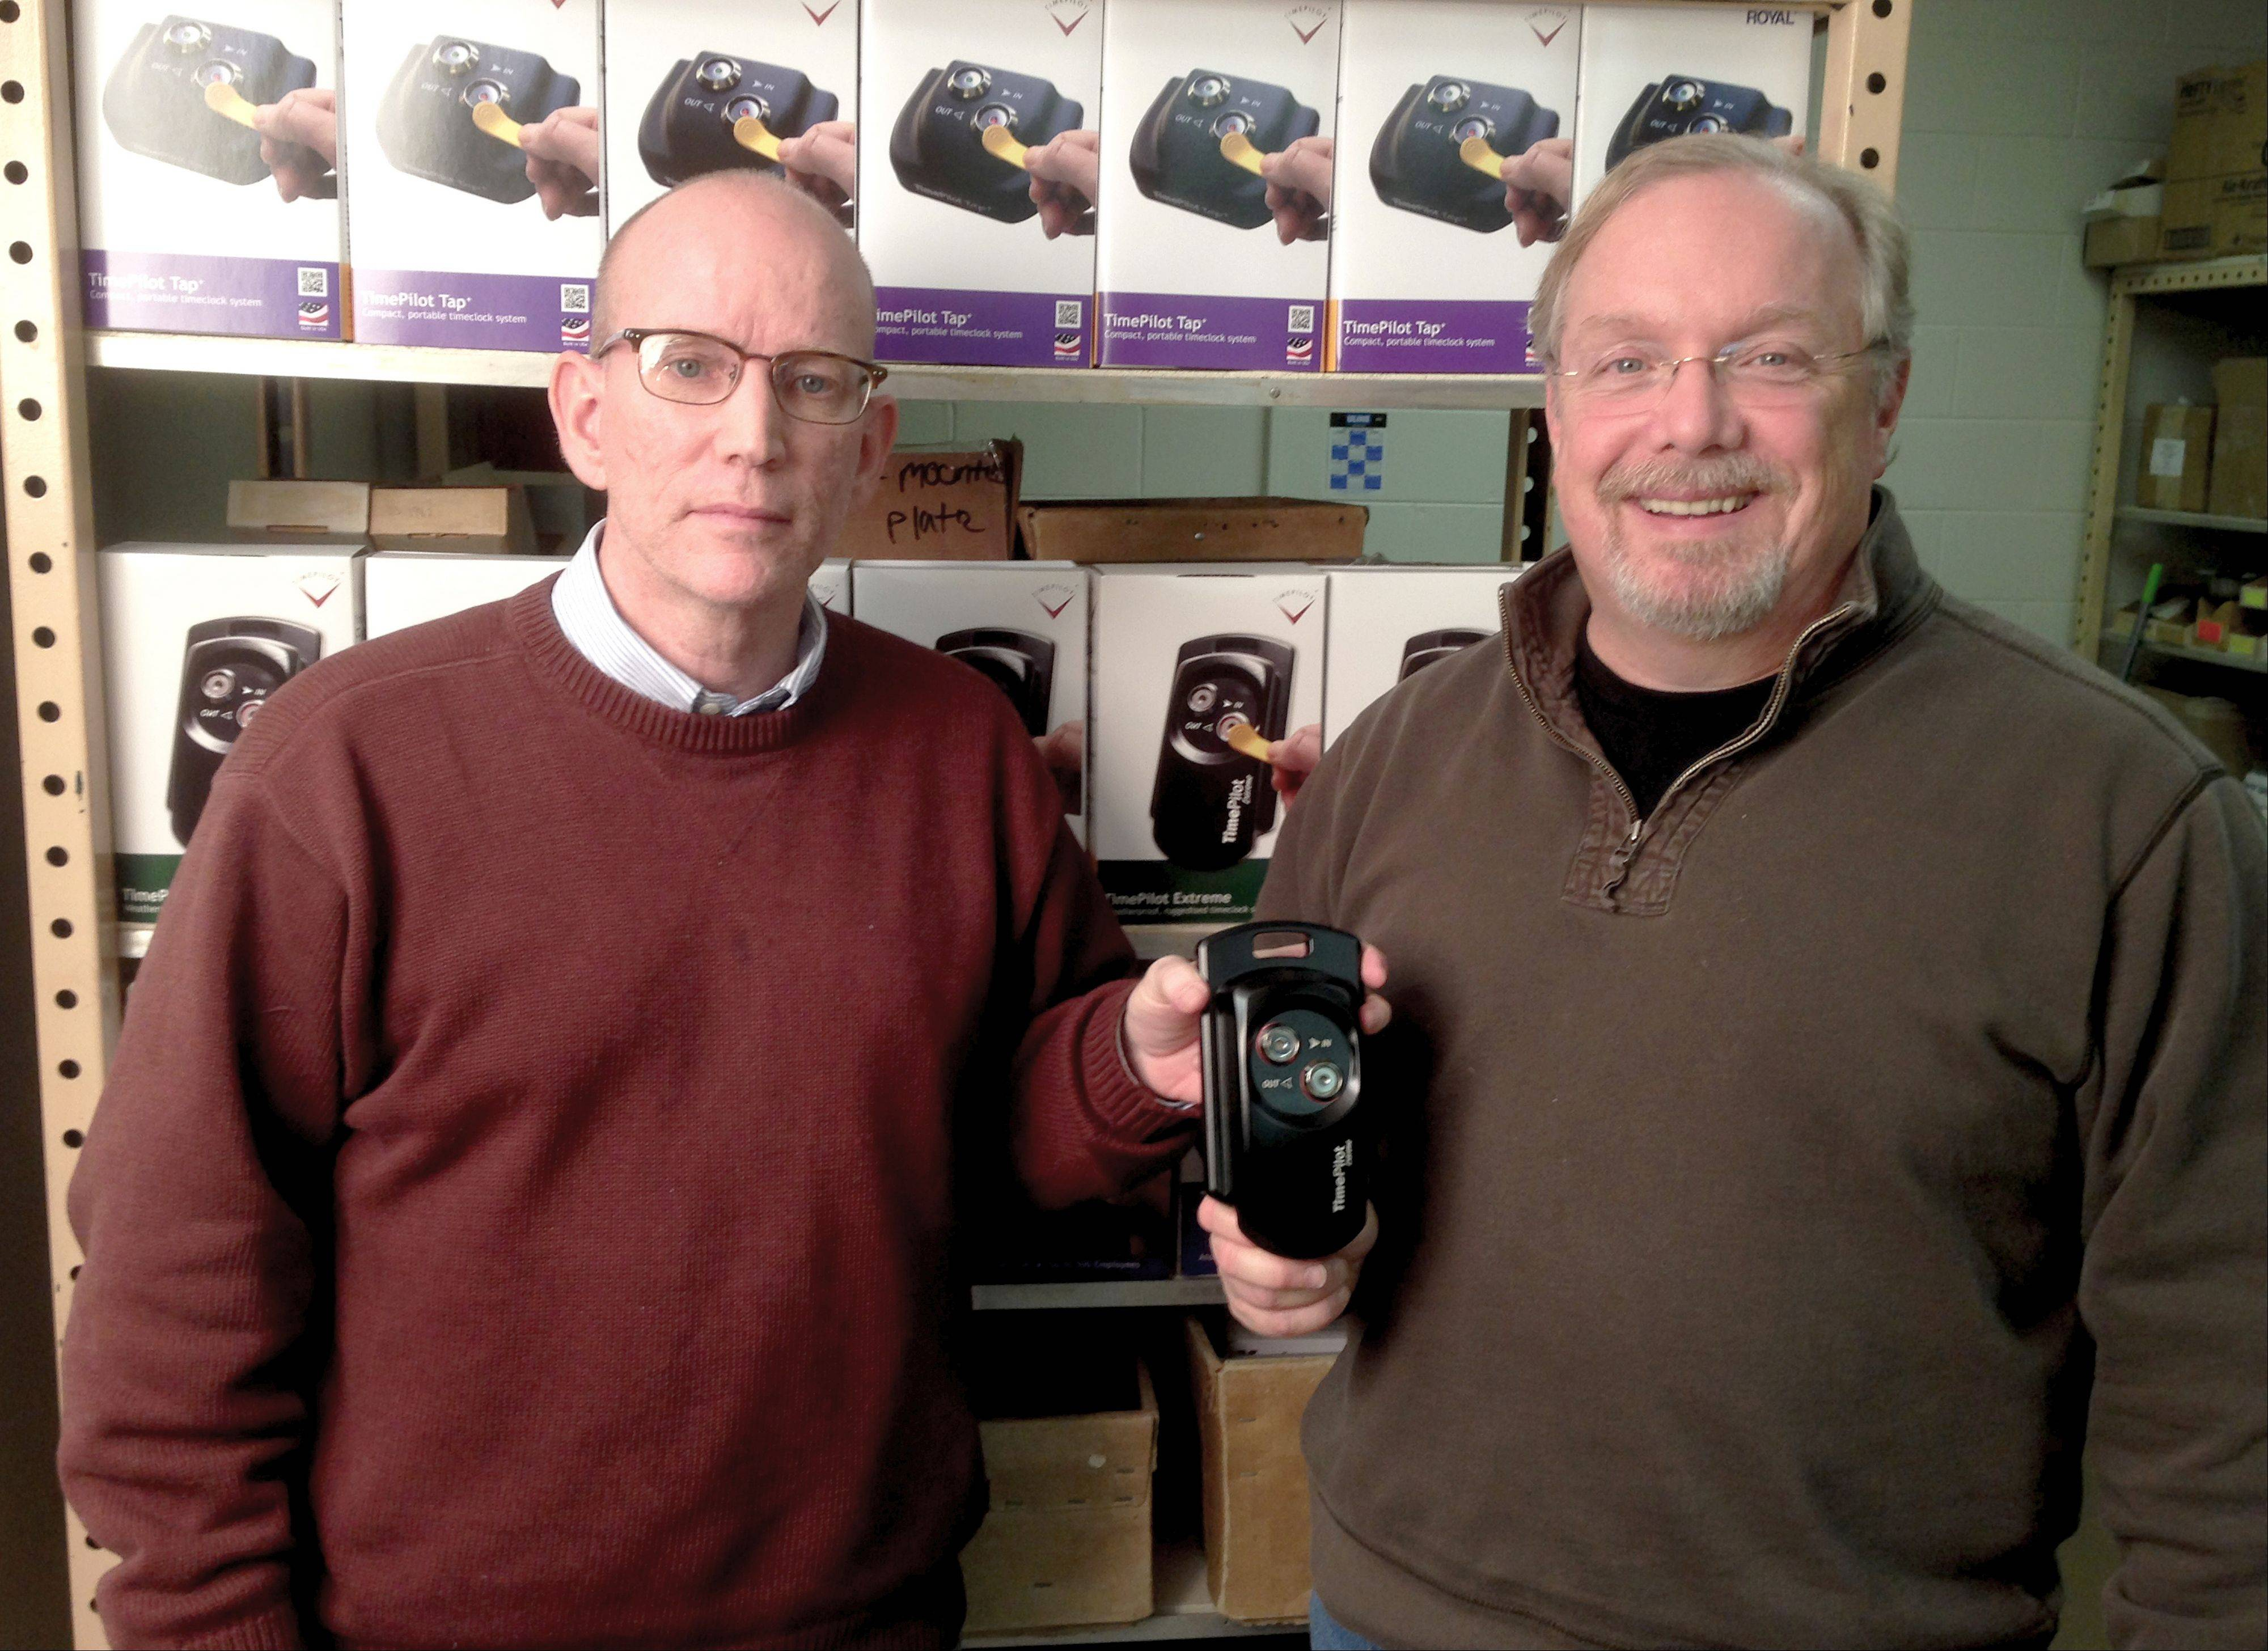 Doug Marsh, TimePilot CEO at left, and Mike Hanlon, TimePilot design director, hold the TimePilot Extreme, the basis for the company's Kickstarter Project called Extreme Blue. They co-founded the company in 2001.